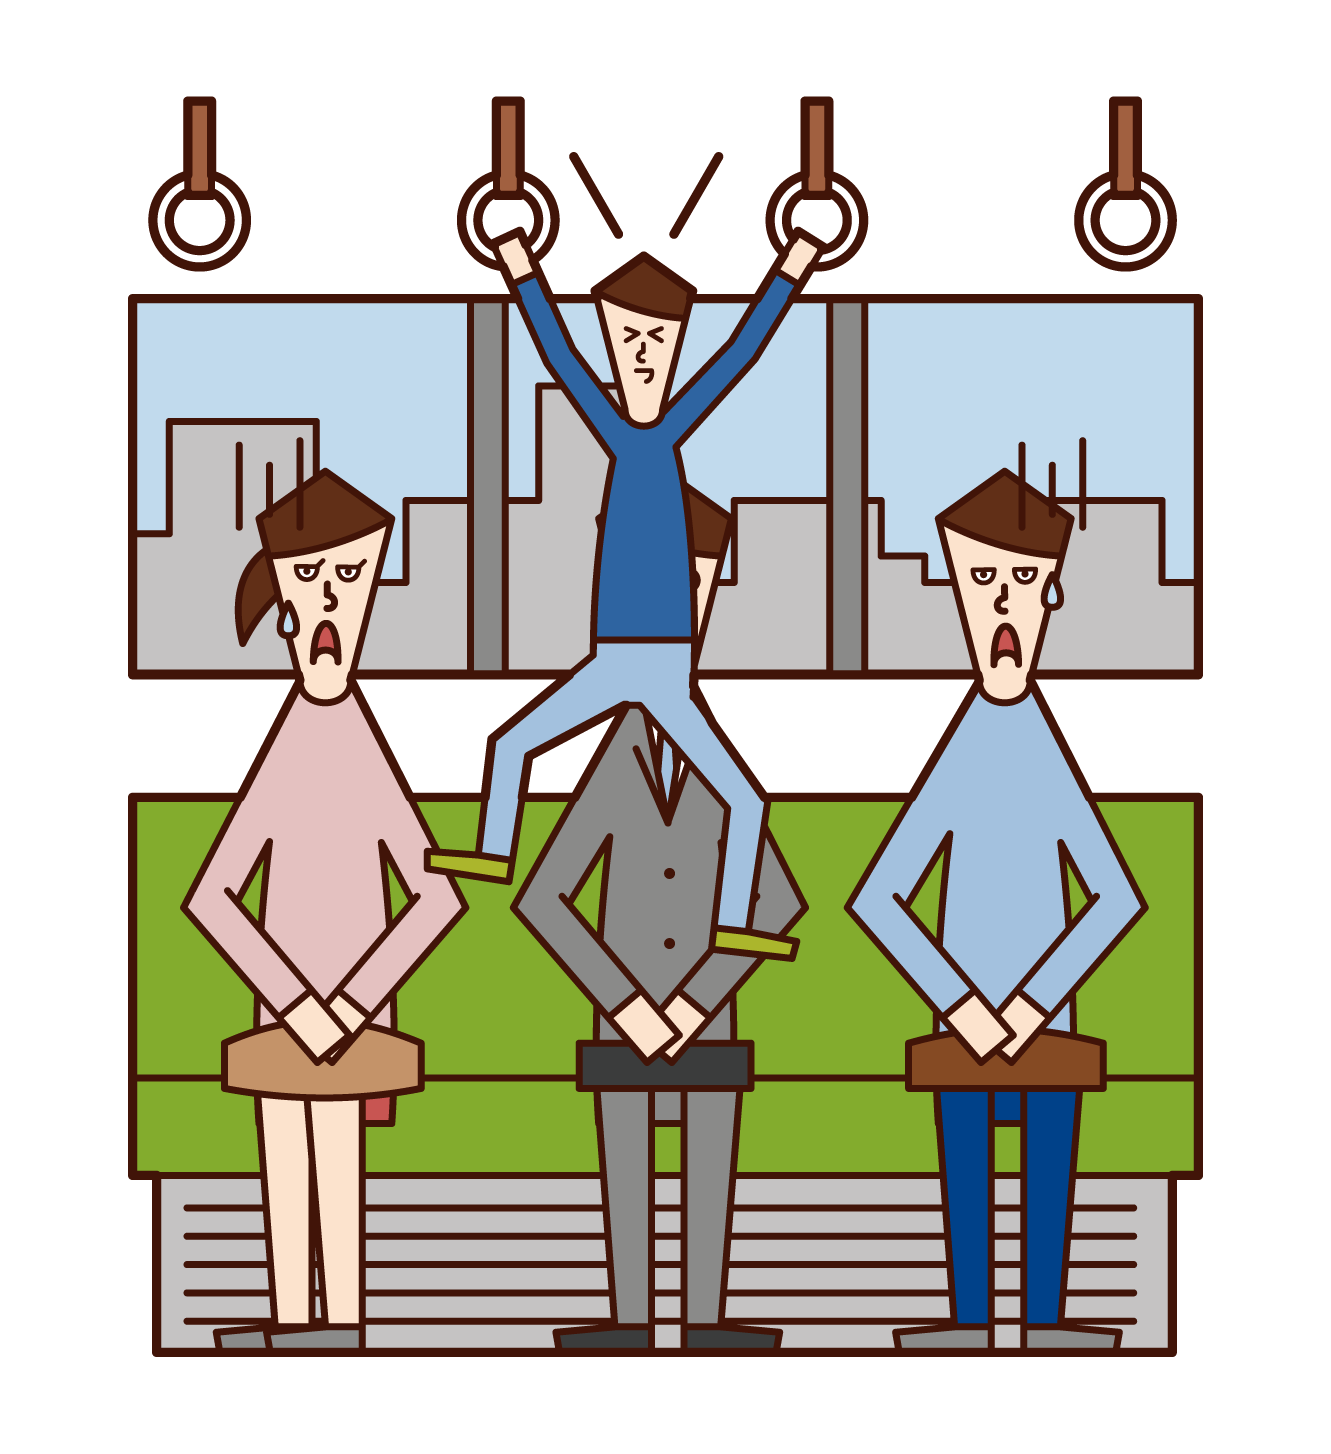 Illustration of a child (boy) hanging on a hanging leather on a train